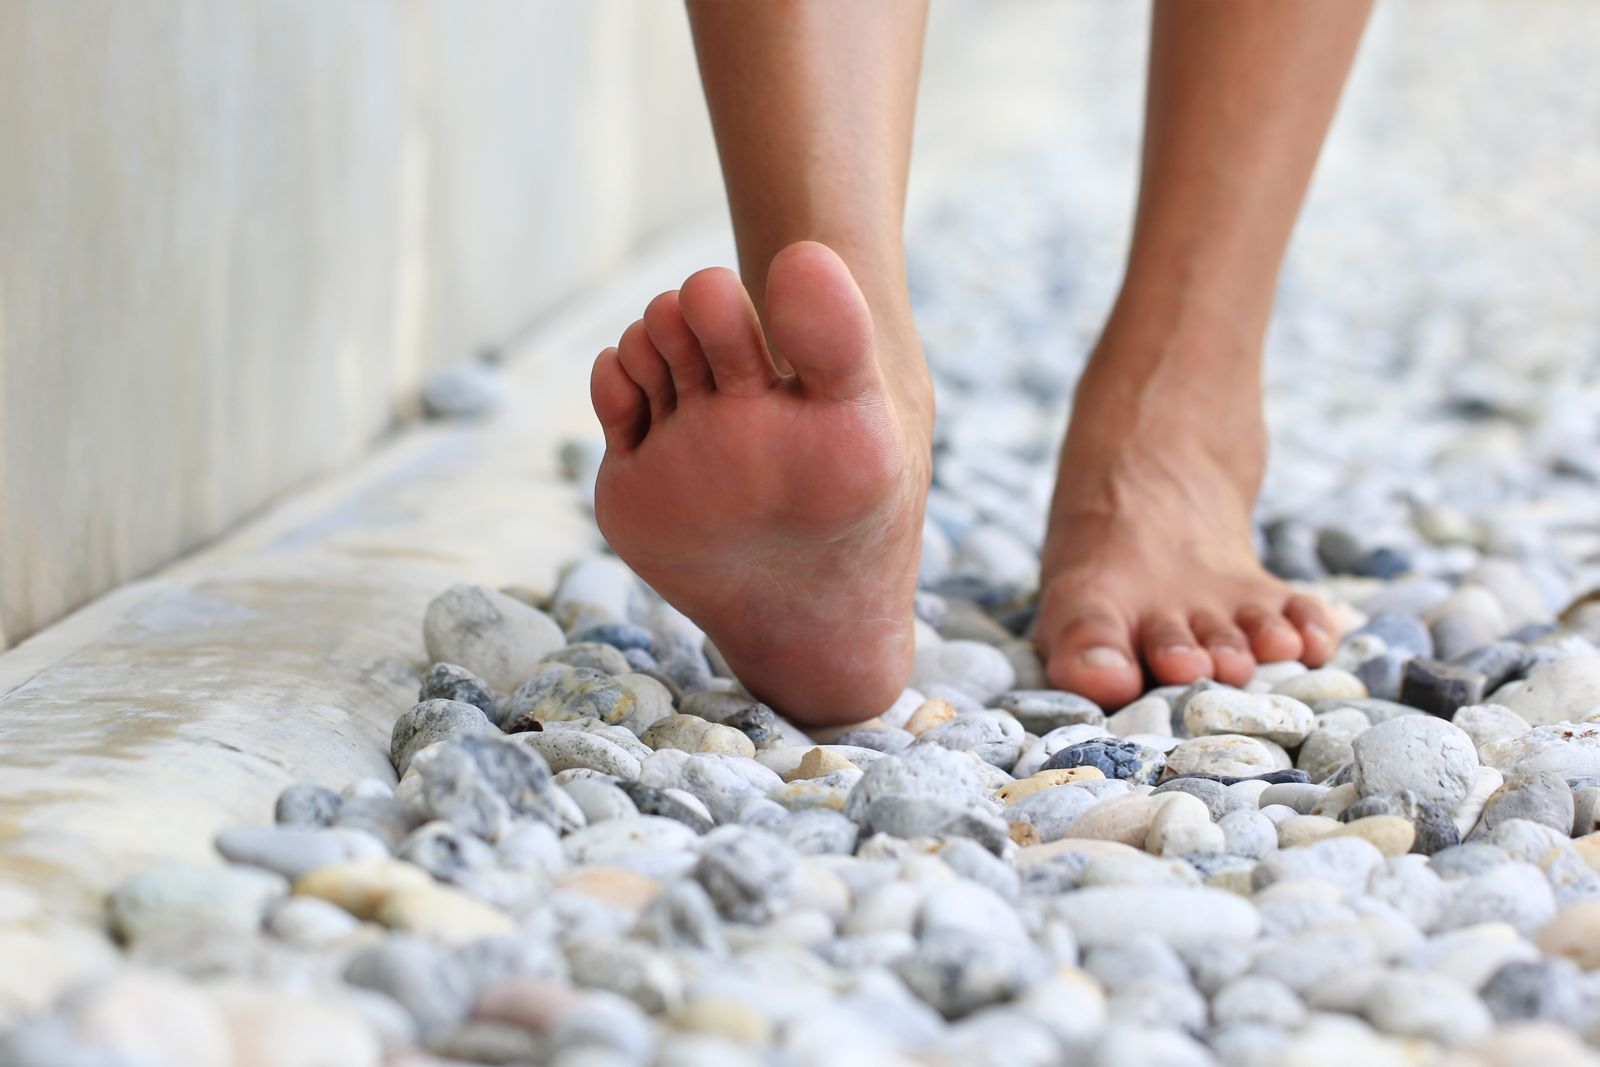 Leneva is a solution to stop you from feeling like you're walking on rocks